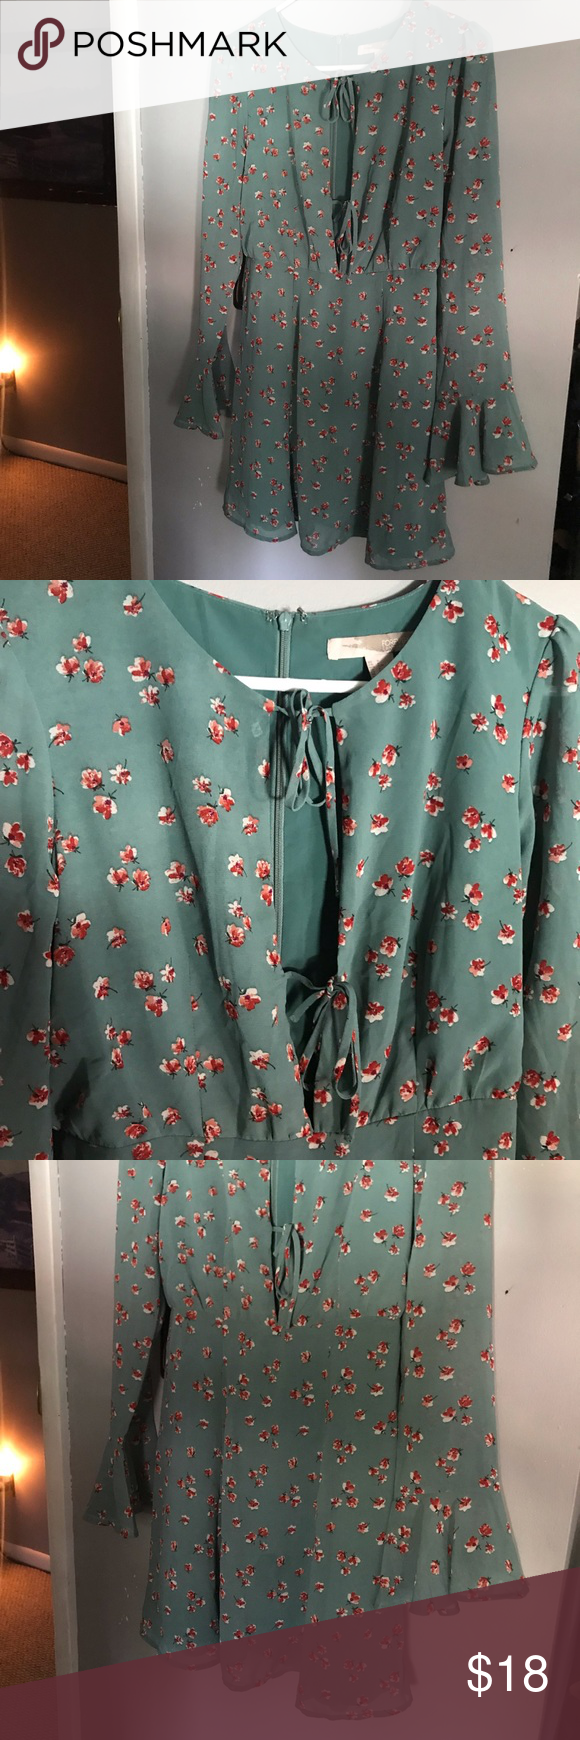 Sage green FOREVER 21 floral dress BNWOT Sage green forever 21 floral dress with two ties at the front with a plunge/open neckline. Zippers down back. Never worn, new with out tags. Forever 21 Dresses #sagegreendress Sage green FOREVER 21 floral dress BNWOT Sage green forever 21 floral dress with two ties at the front with a plunge/open neckline. Zippers down back. Never worn, new with out tags. Forever 21 Dresses #sagegreendress